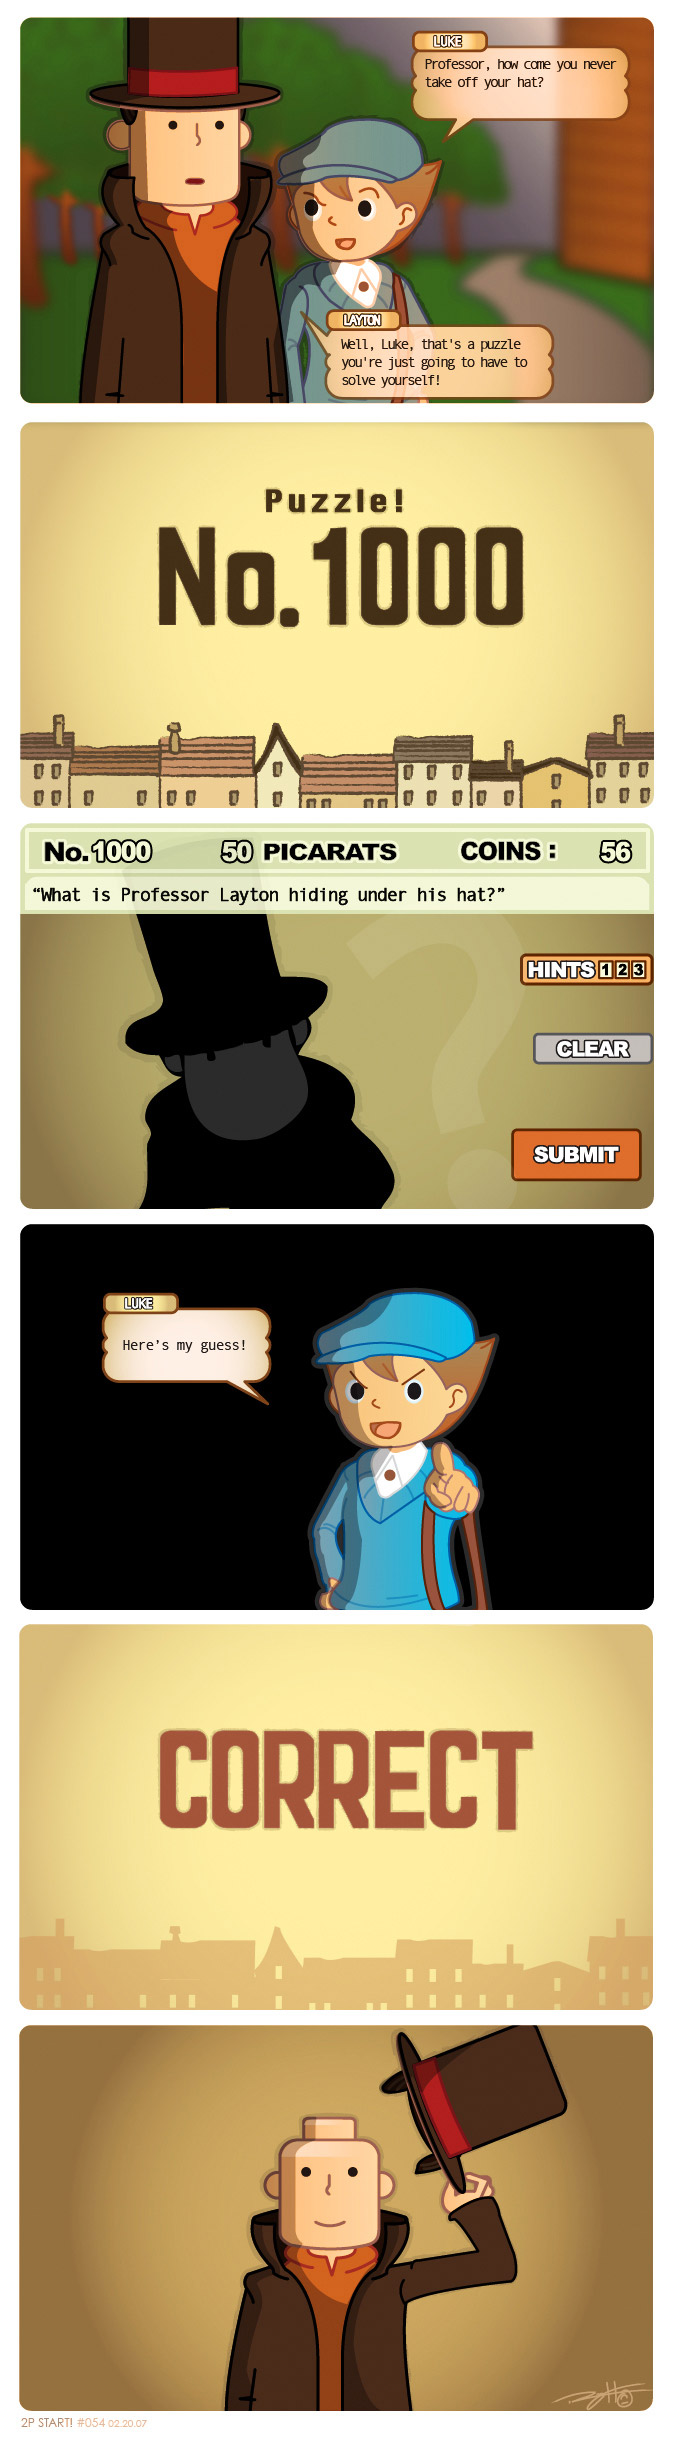 Professor Layton and the Permanent Top Hat